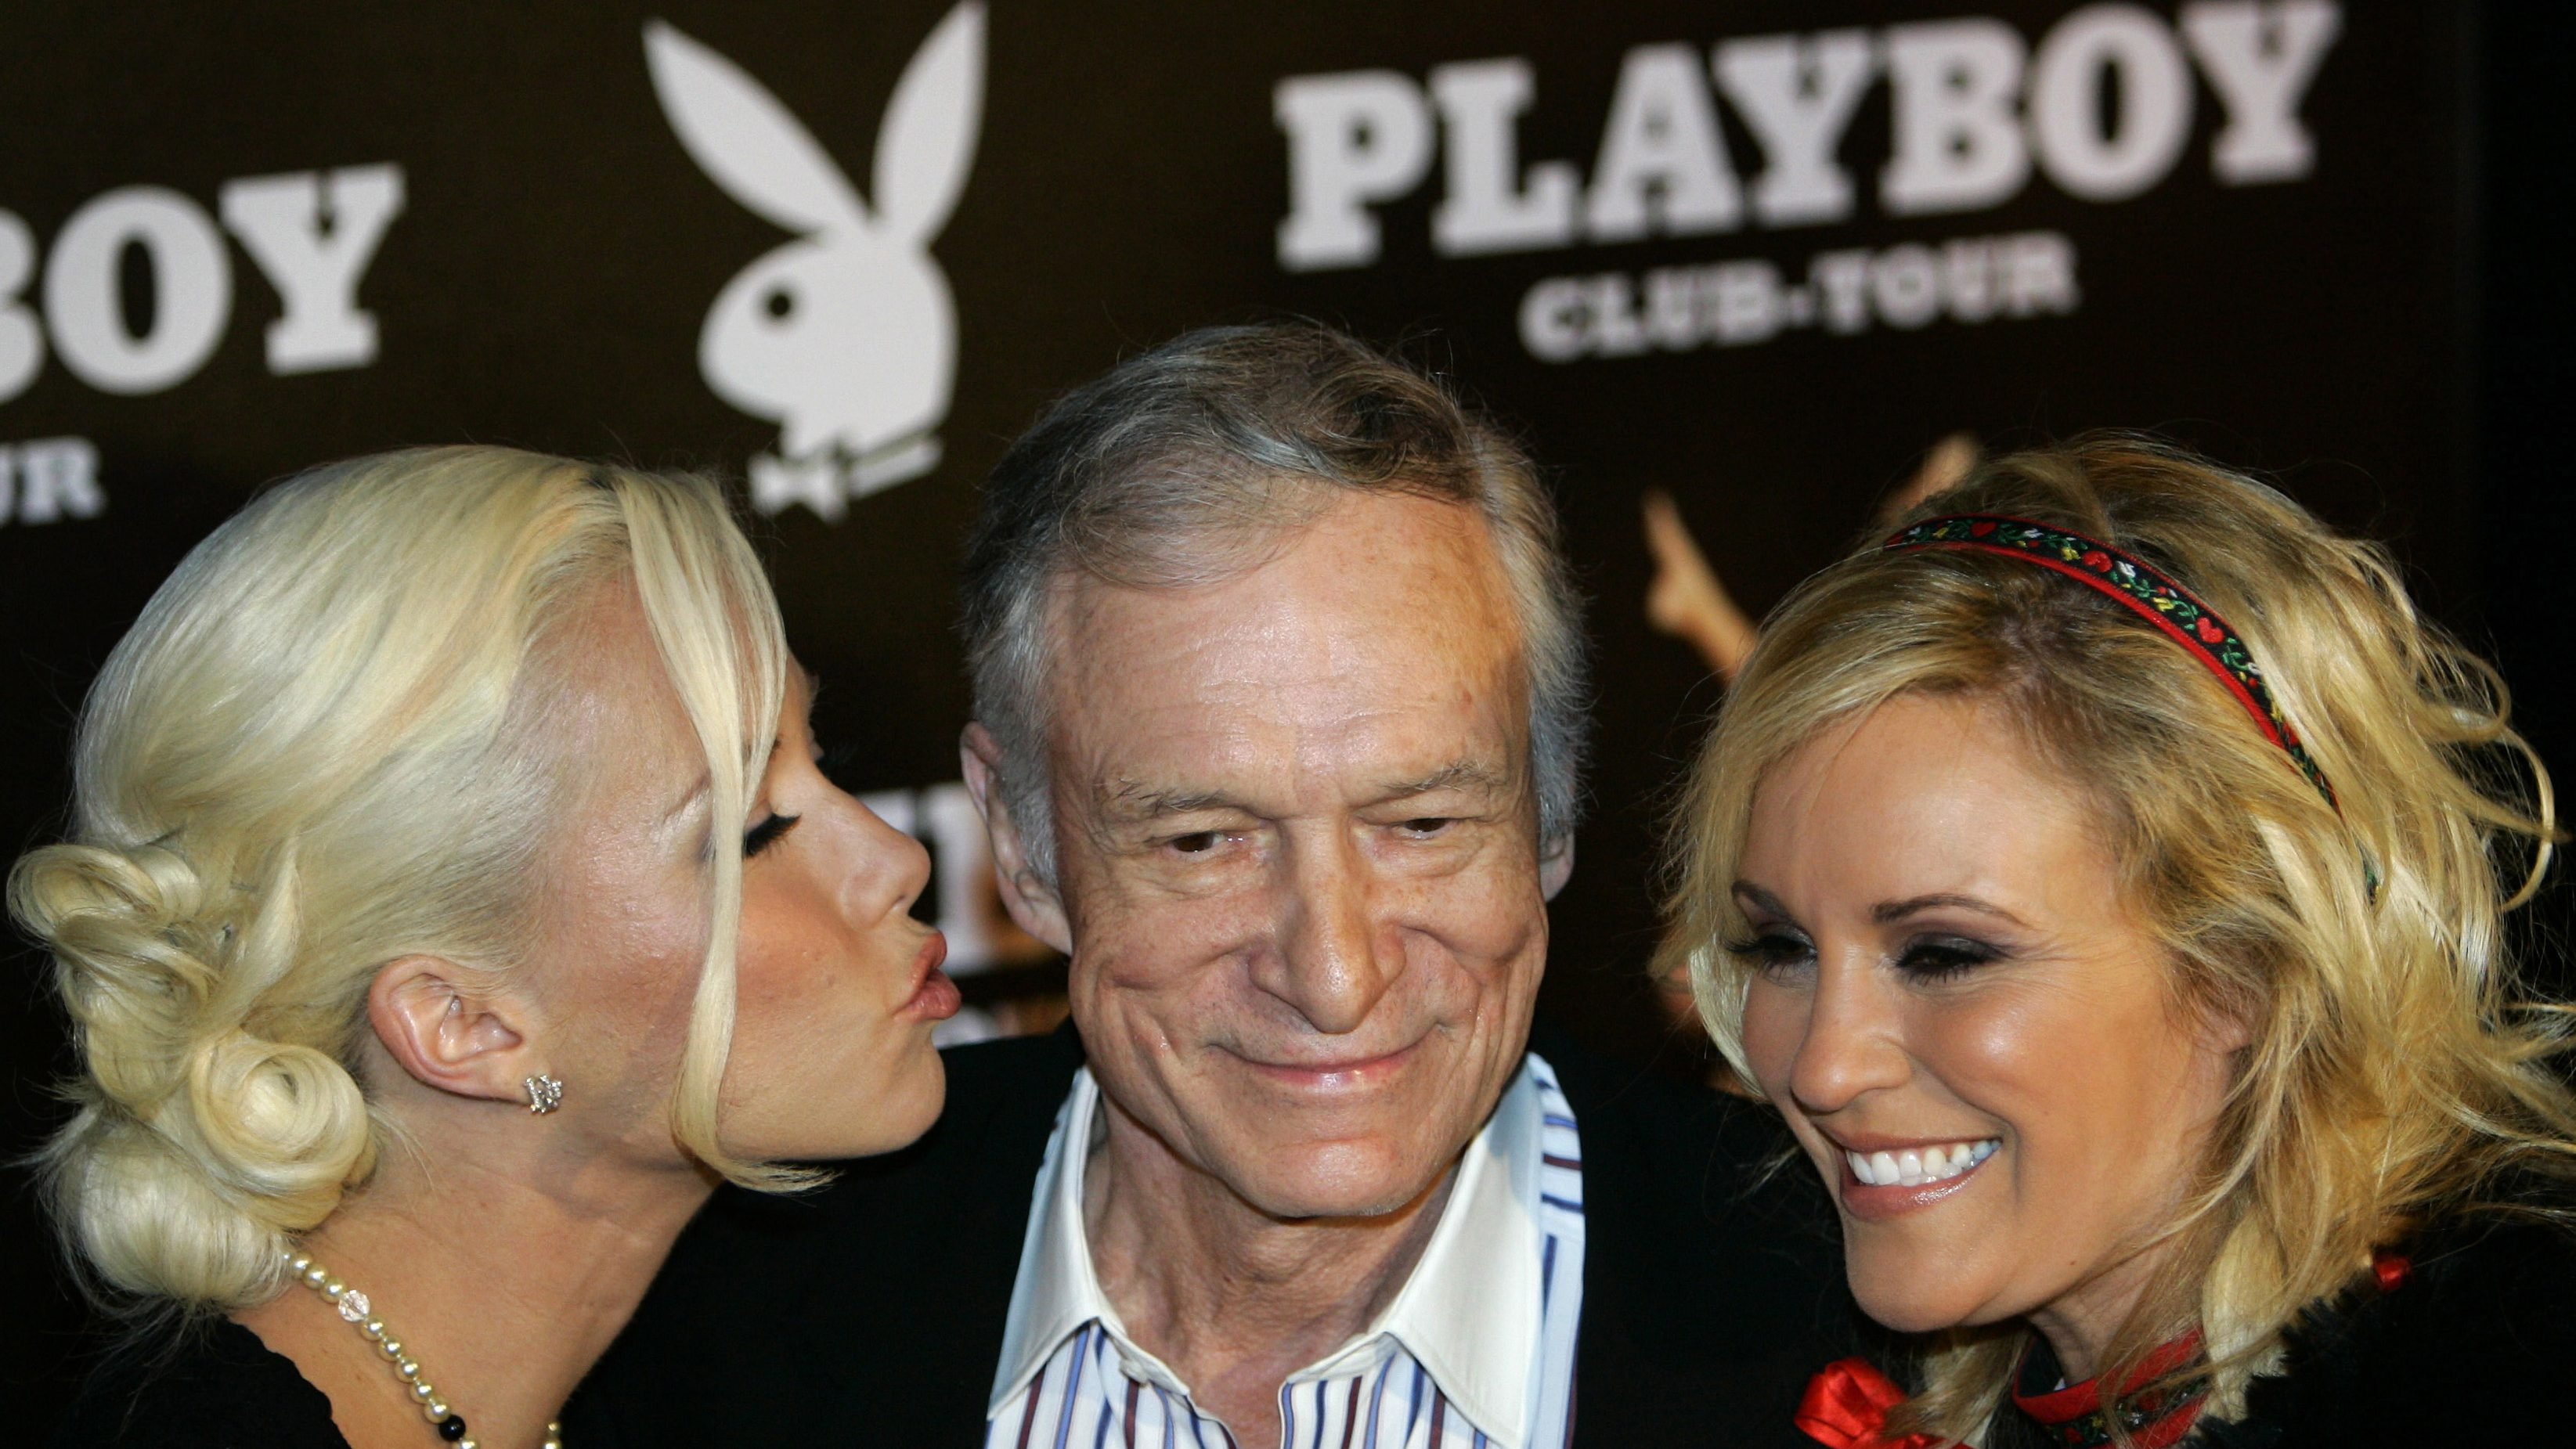 Playboy magazine founder Hugh Hefner arrives with girlfriend Kendra Wilkinson (L) and Bridget Marquardt for his 80th birthday party in Munich's famous club P1 May 31, 2006.